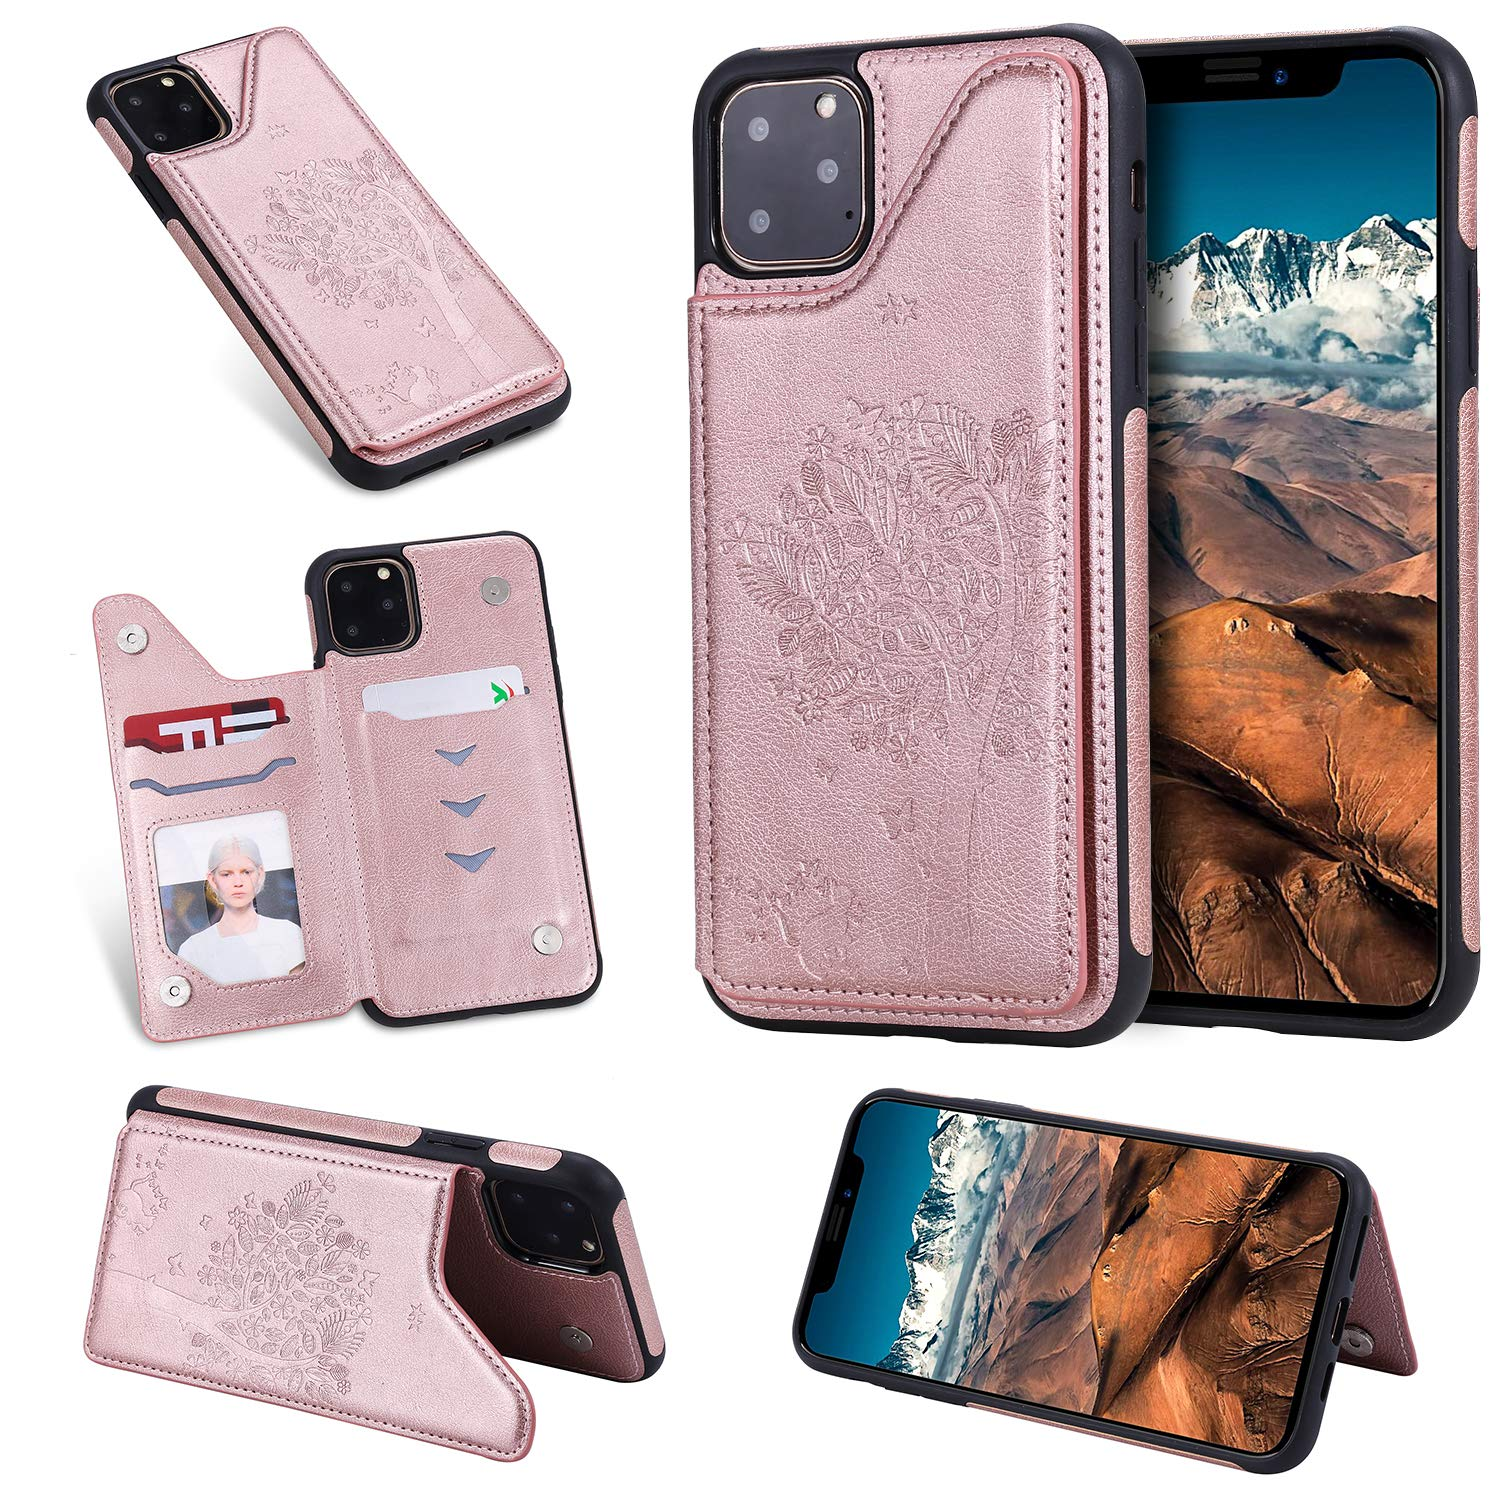 Tznzxm iPhone 2019 (XI Max) 6.5'' Case,Fashion Tree Cat Design PU Leather Kickstand Card Slots Double Magnetic Clasp Durable Shockproof Soft TPU Back Wallet Flip Cover for iPhone XI Max 2019 Rose Gold by Tznzxm